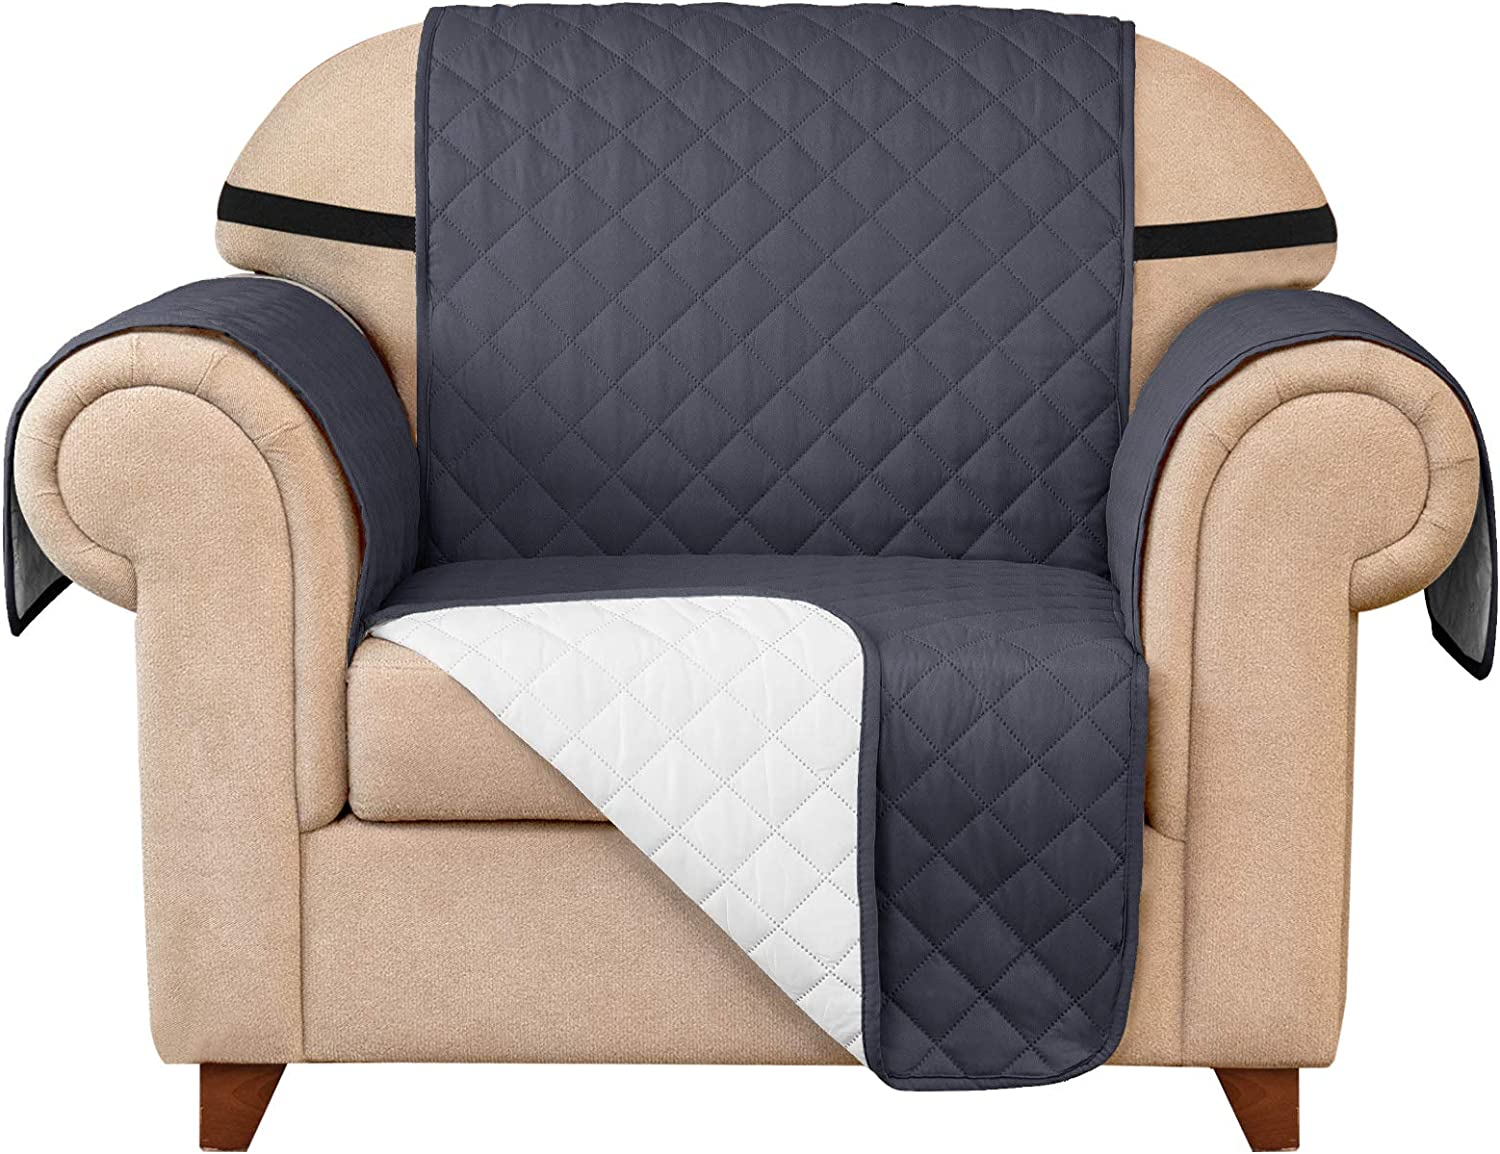 Subrtex Quilted Reversible Sofa Couch Slipcover Anti-Slip Furniture Protector Covers for Pets and Kids with Elastic Straps (Chair, Gray)